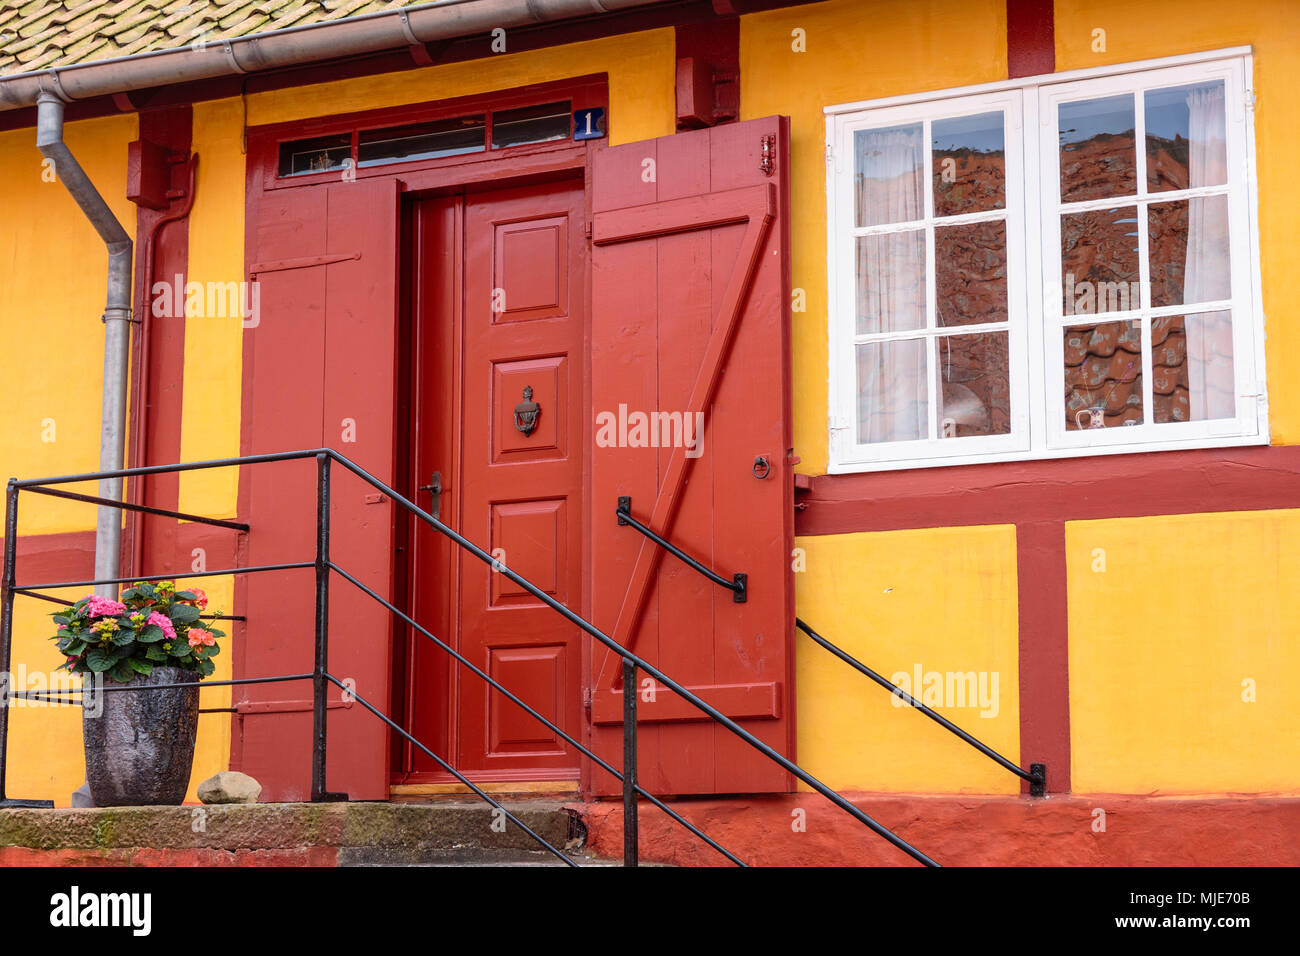 Yellow-red half-timbered house in the old town of Svaneke, Europe, Denmark, Bornholm, Stock Photo